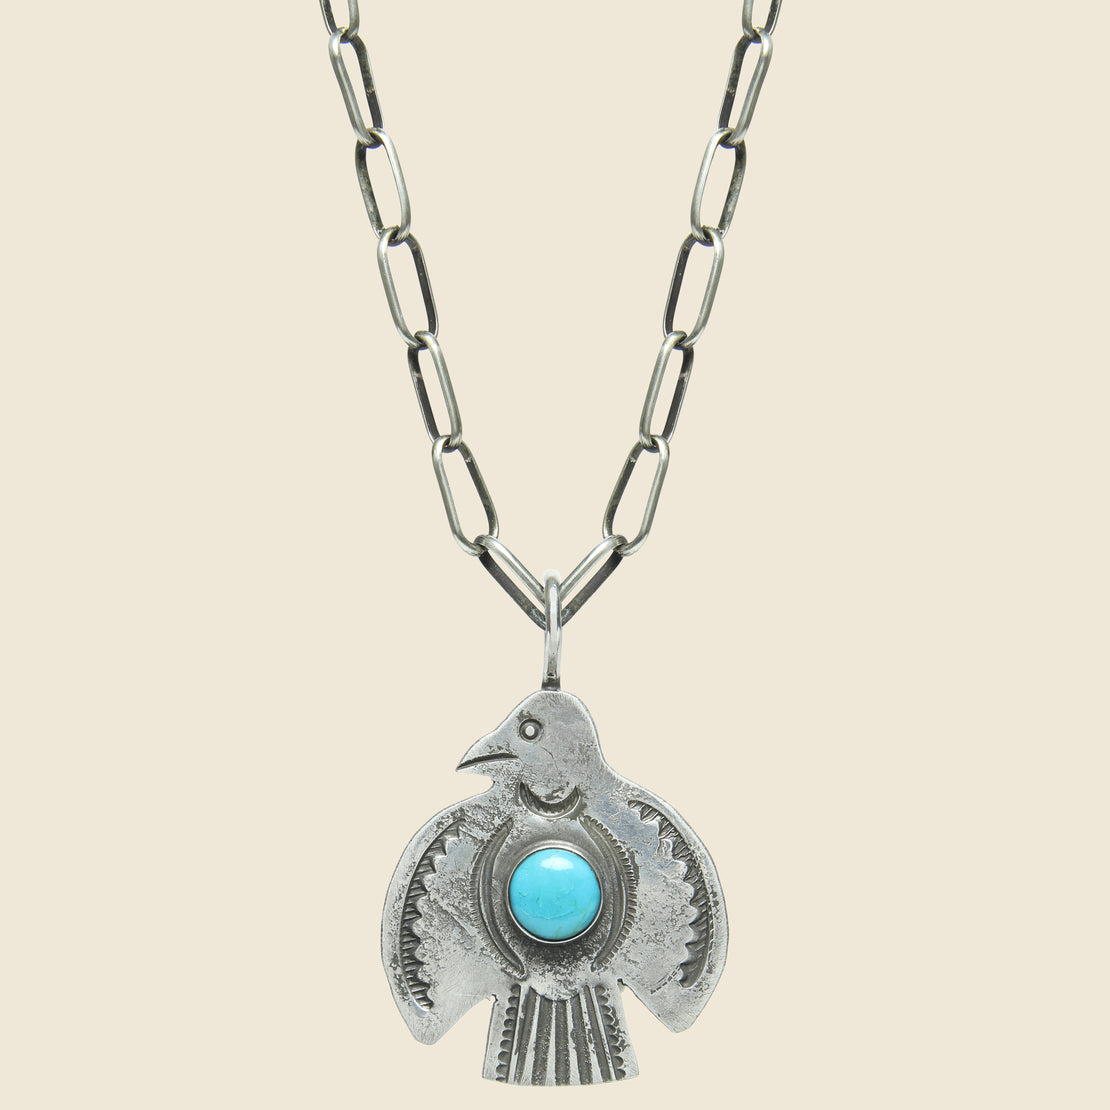 Smith Bros. Trading Co. Round Wings Thunderbird Pendant Necklace - Sterling/Turquoise